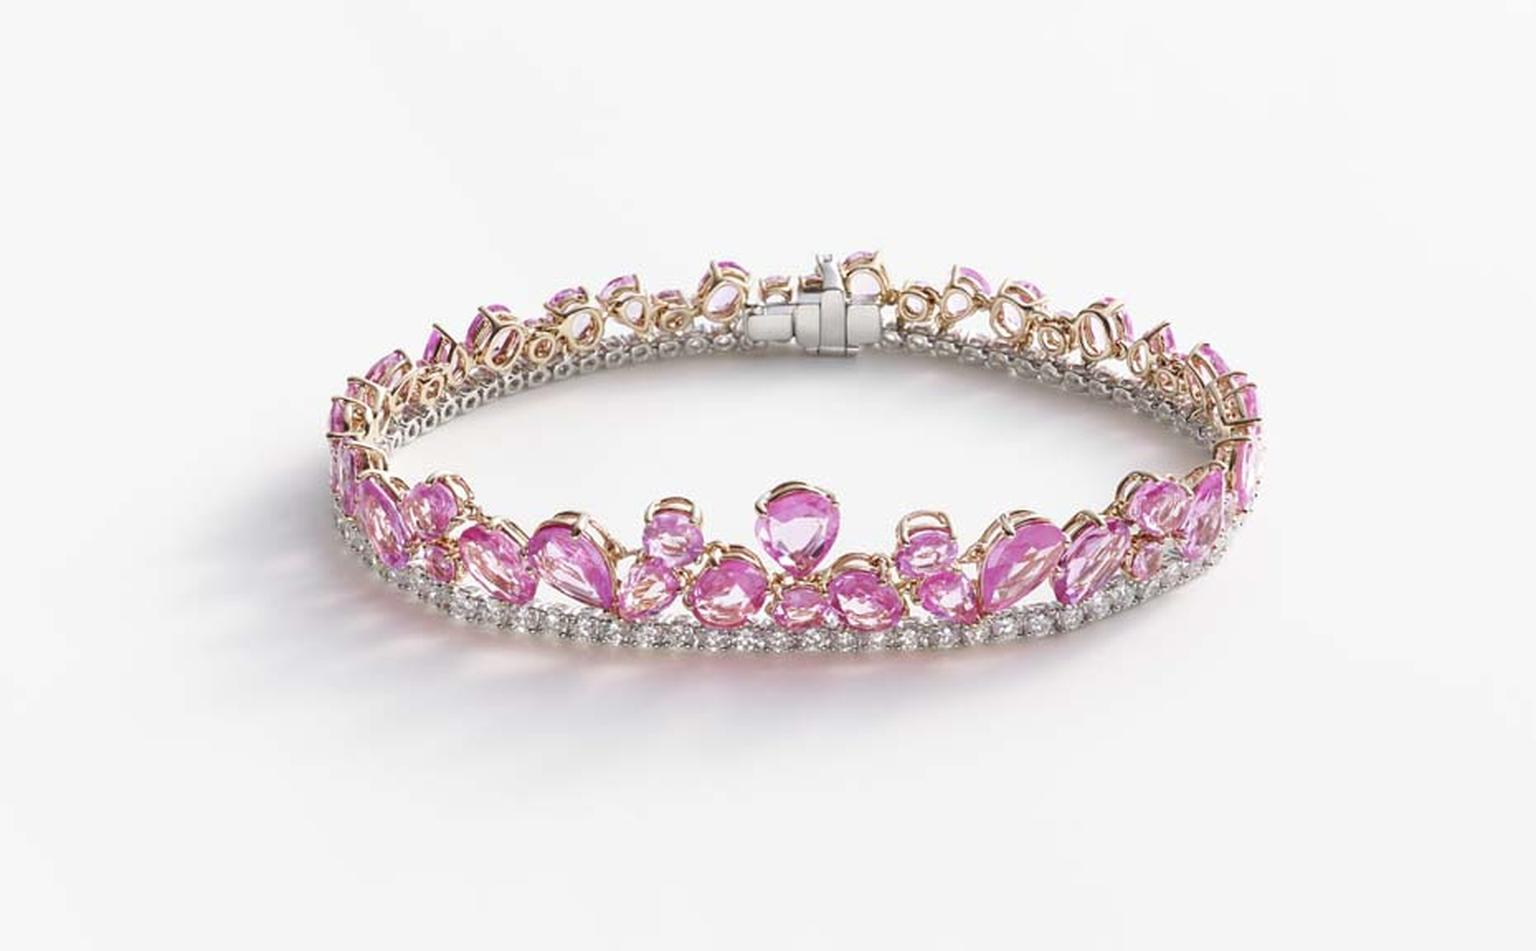 William & Son celebrates pink sapphires in its new Beneath the Rose high jewellery collection. Pink sapphire bracelet with diamonds in white and rose gold.